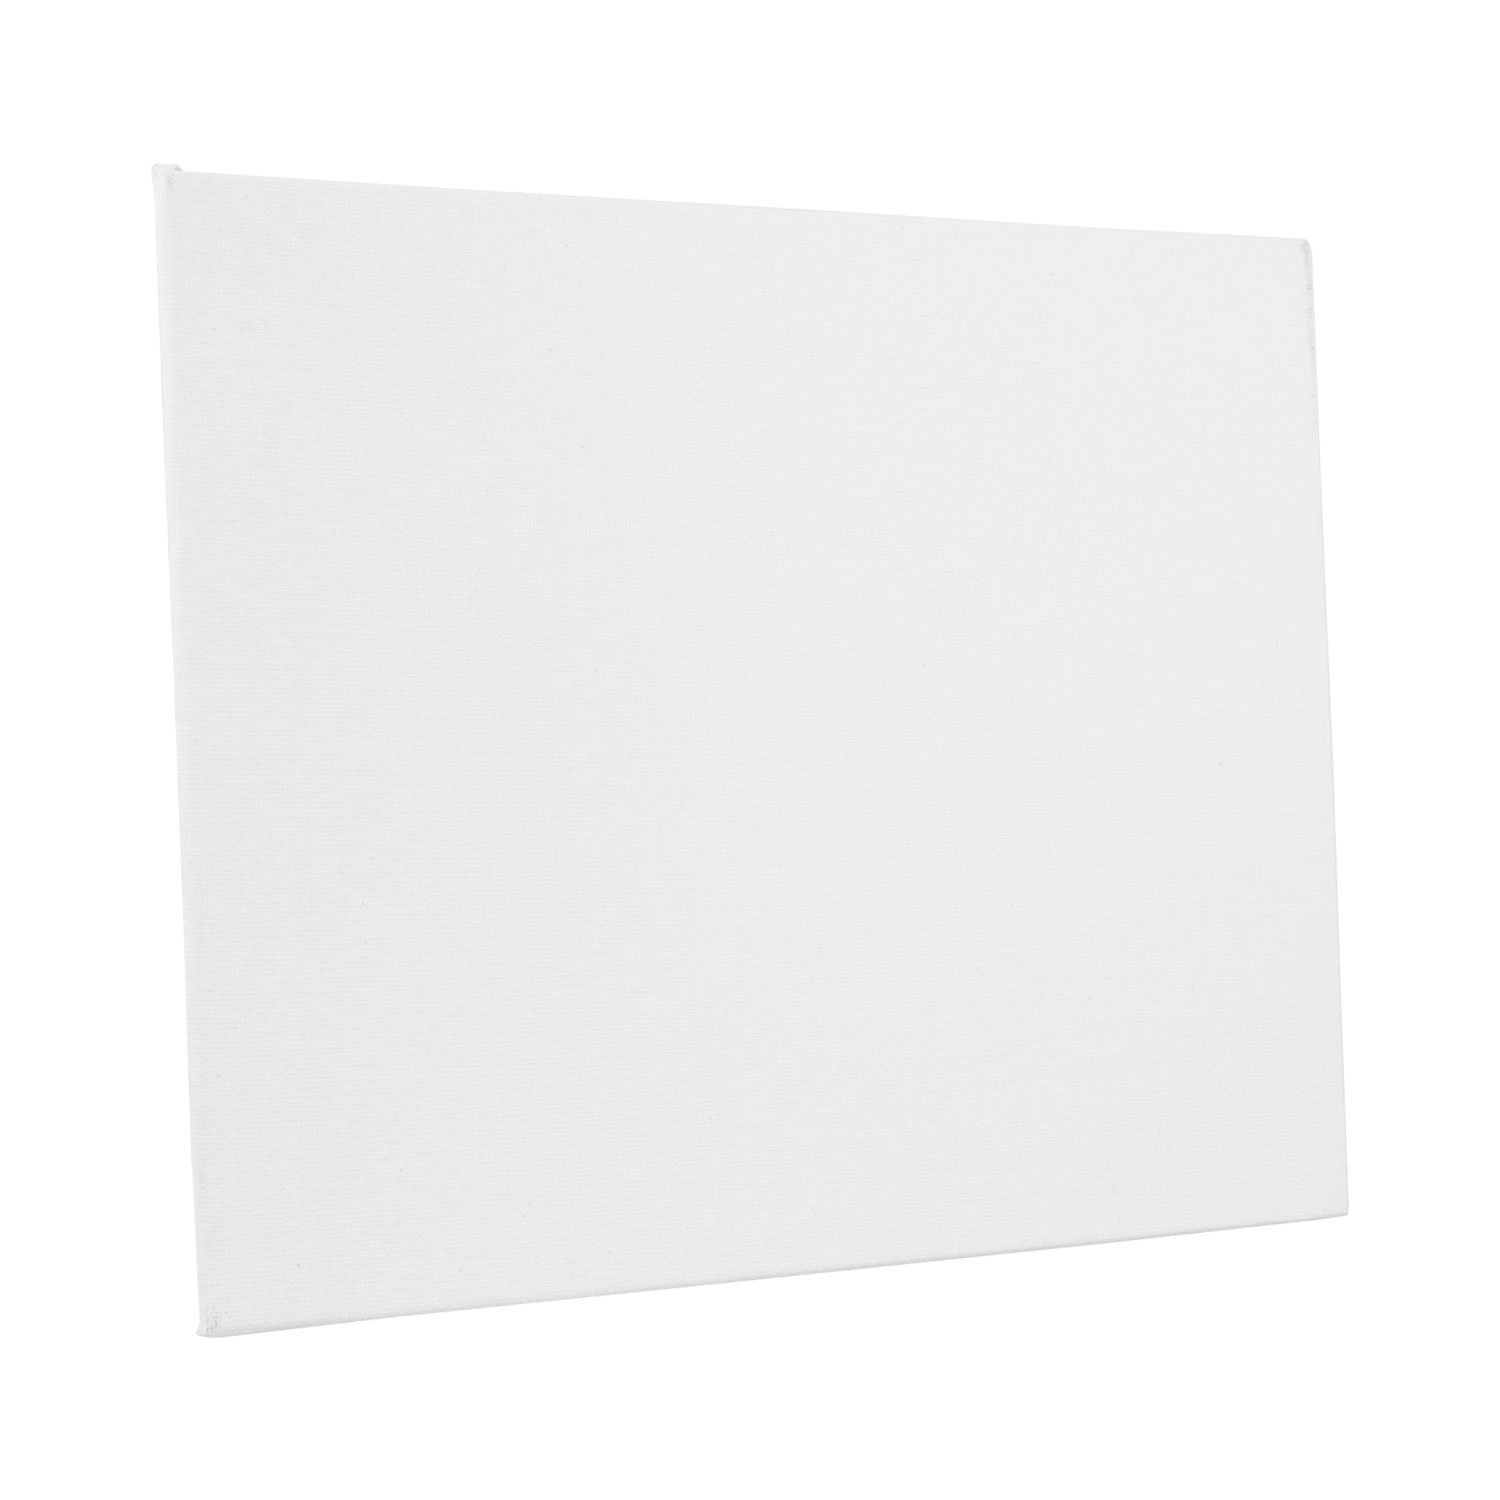 US Art Supply 5 X 7 inch Professional Artist Quality Acid Free Canvas Panels 8-12-Packs (1 Full Case of 96 Single Canvas Panels) by US Art Supply (Image #2)